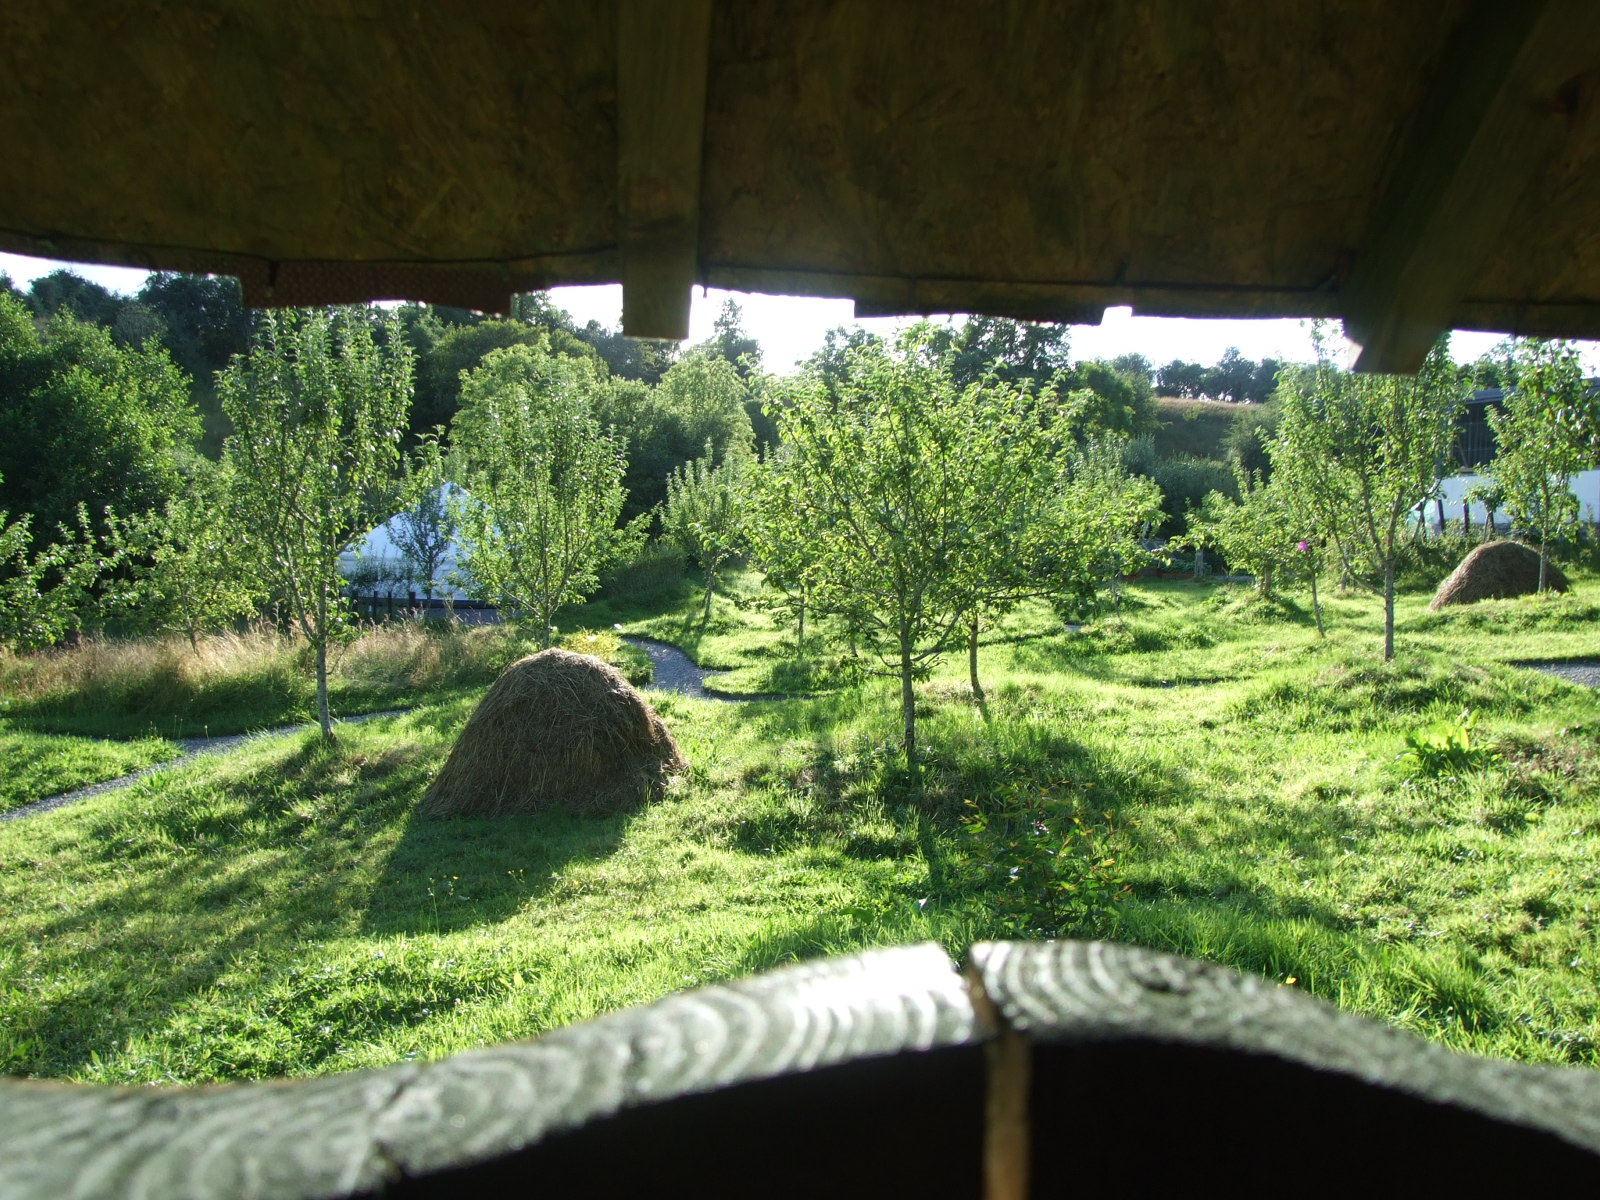 View Through The Window from Luxury Camping Eco Toilet Facilities.